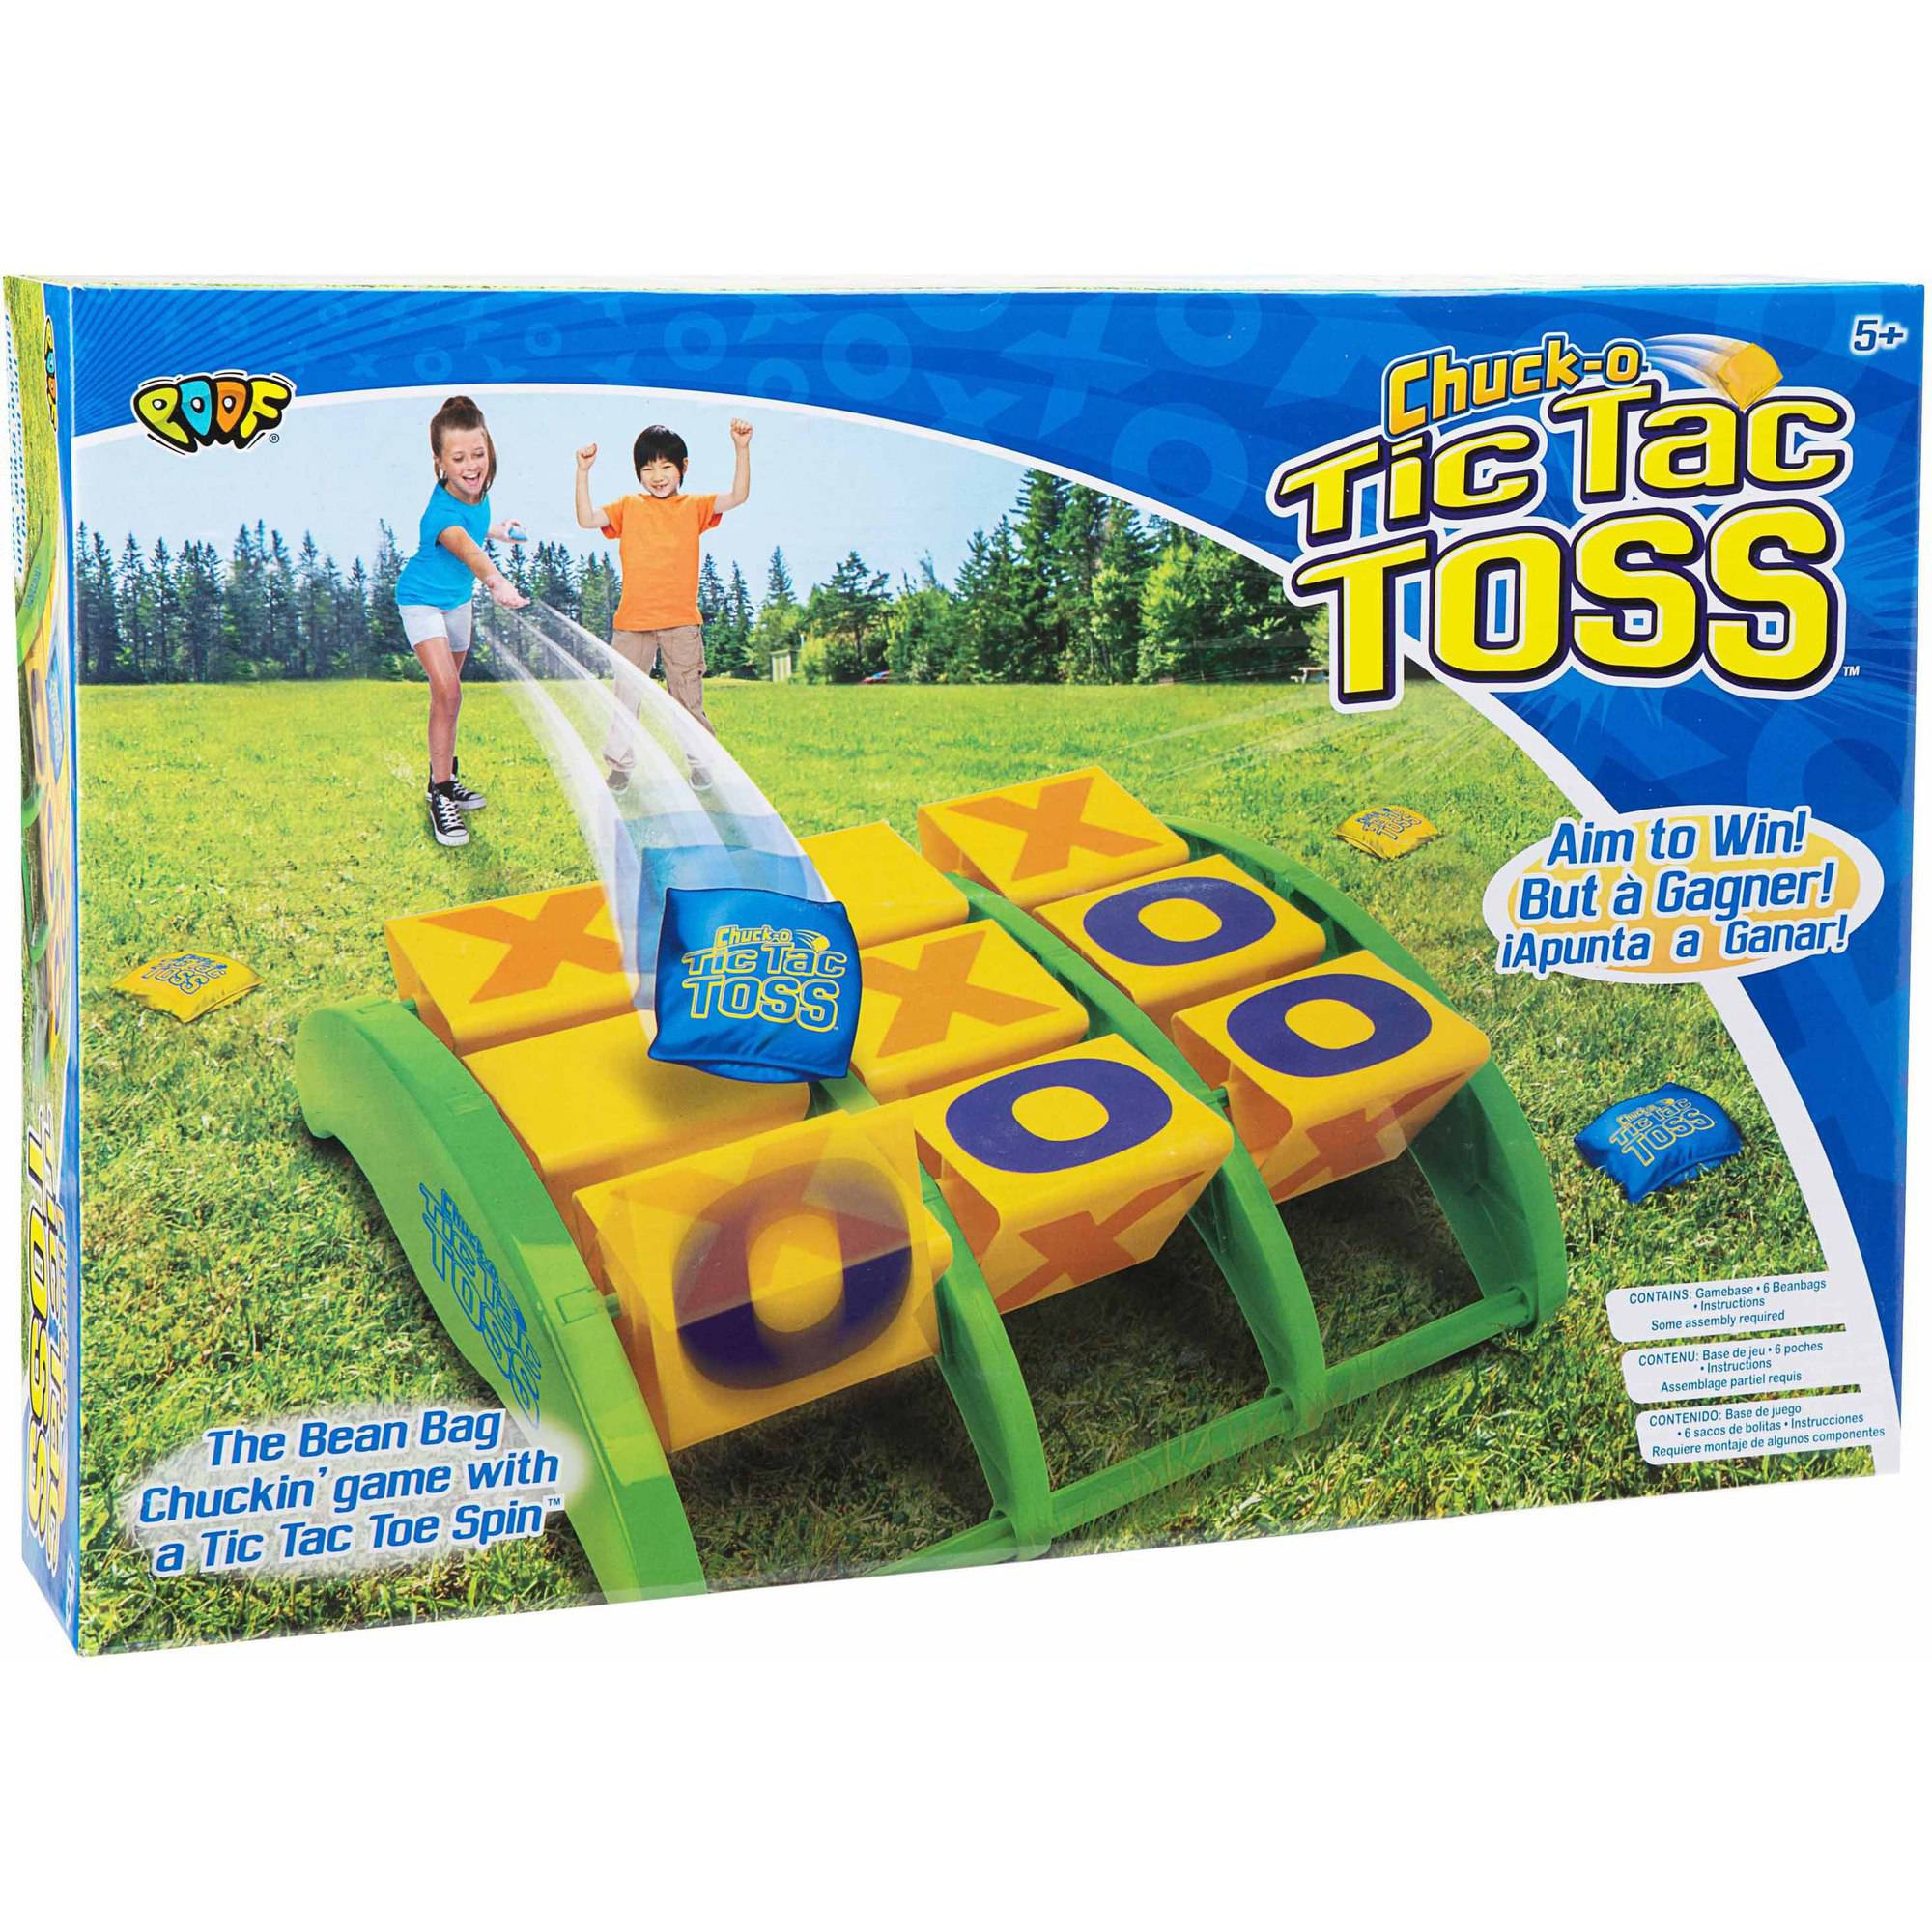 POOF Chuck-O Tic Tac Toss by Alex Brands